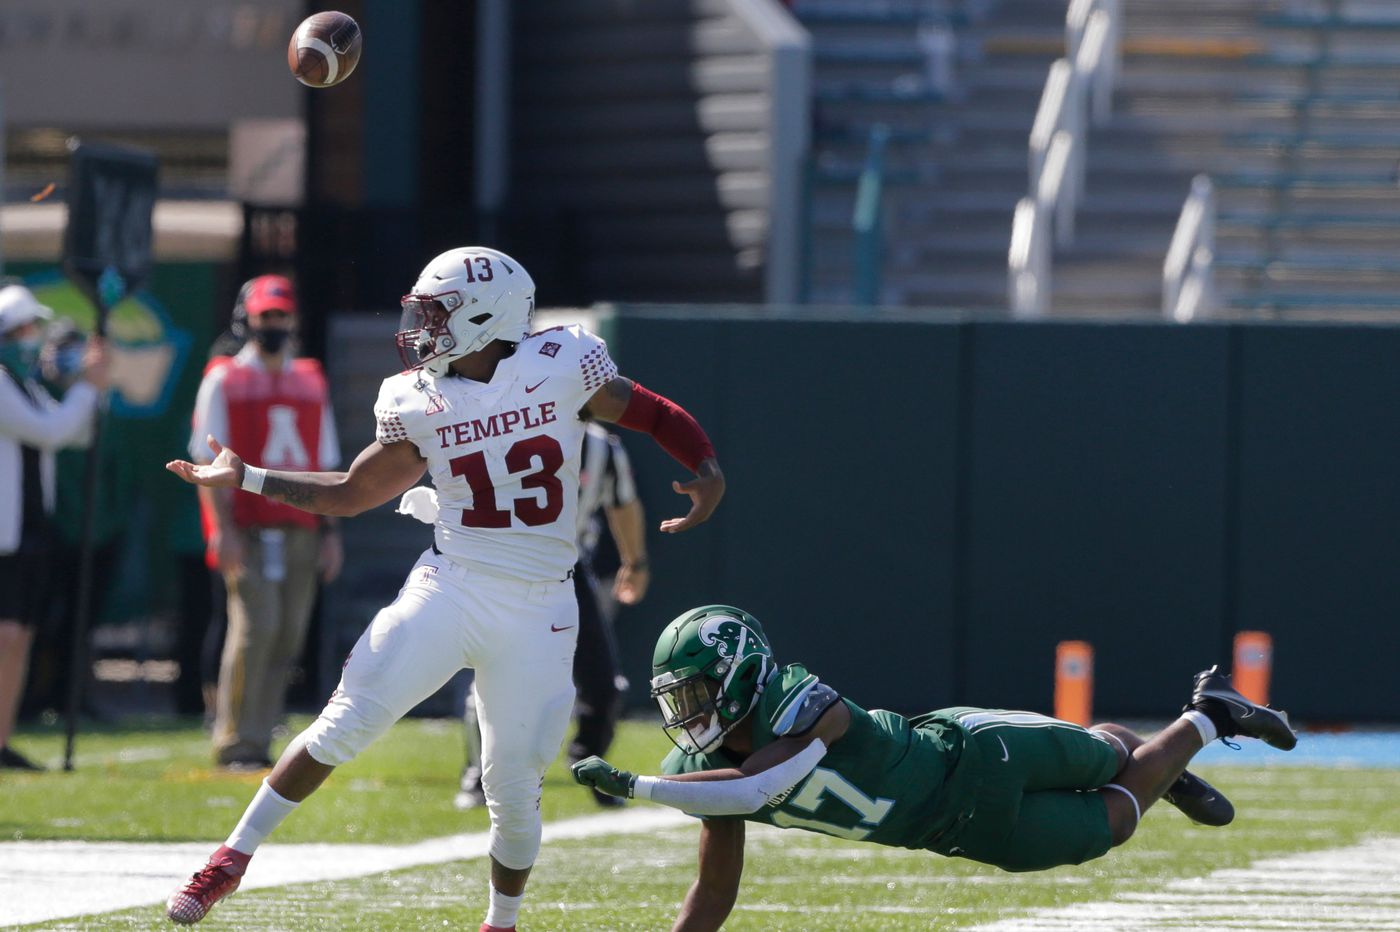 Temple routed, 38-3, as Tulane stages second-half explosion